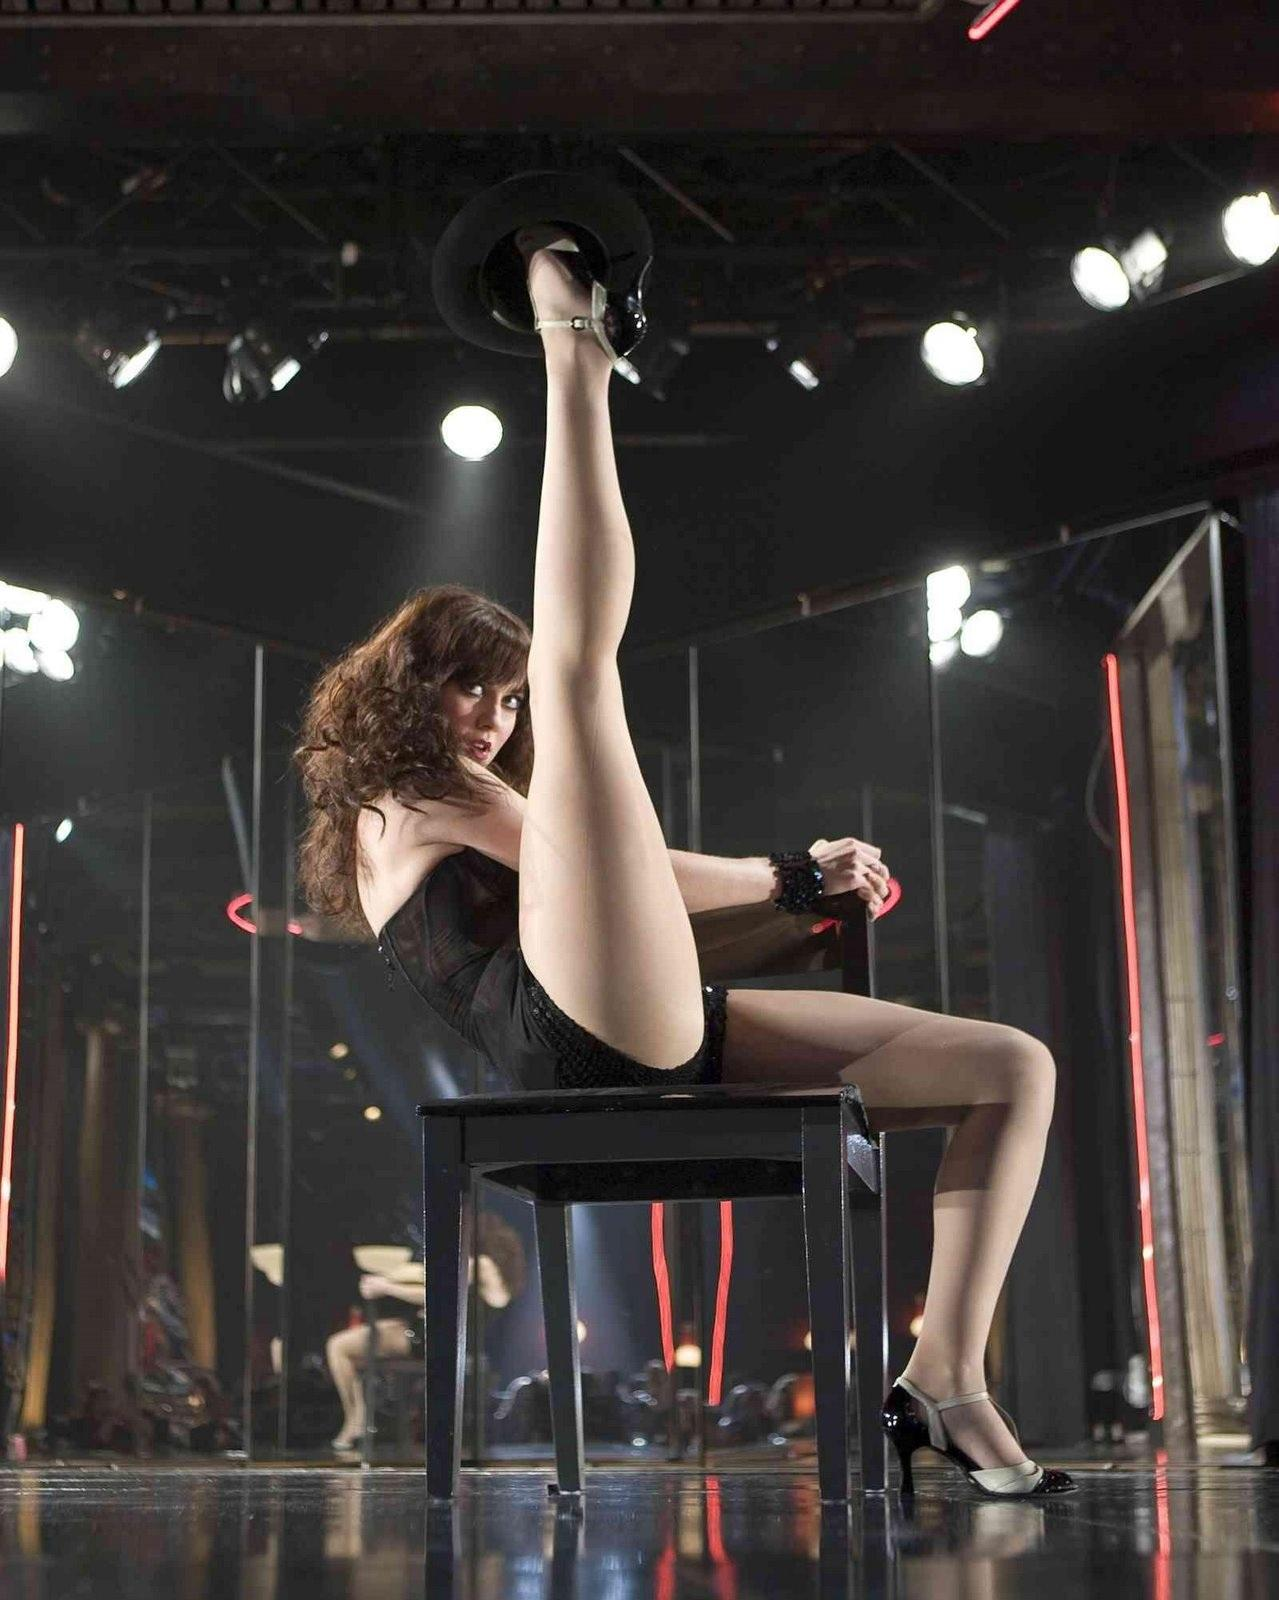 mary_elizabeth_winstead_4.jpg